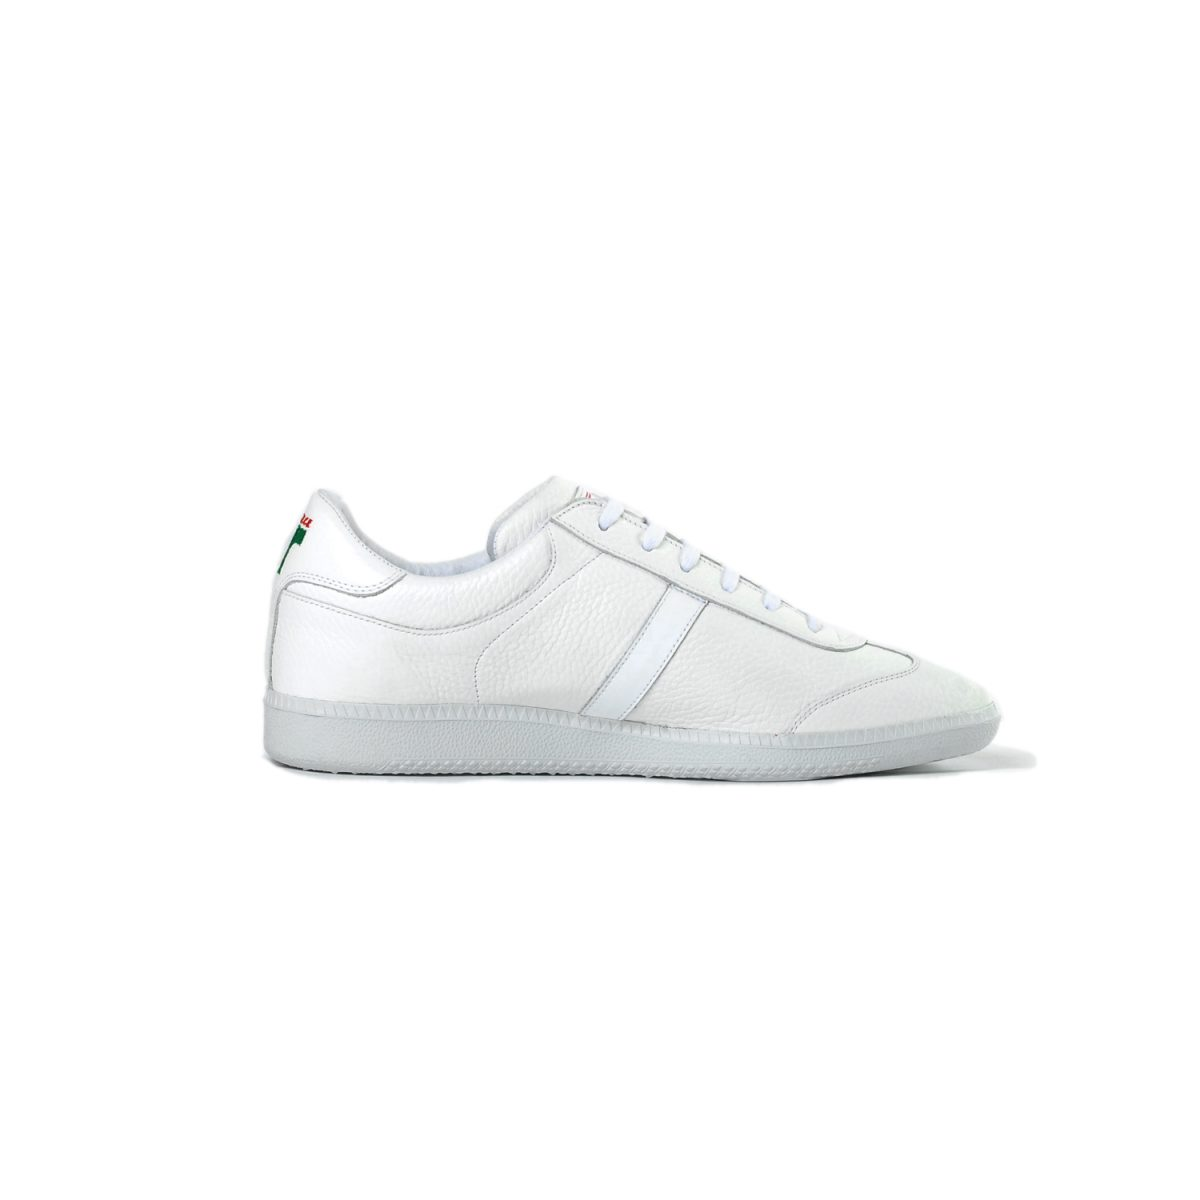 Tisza shoes - Compakt - White-tricolor